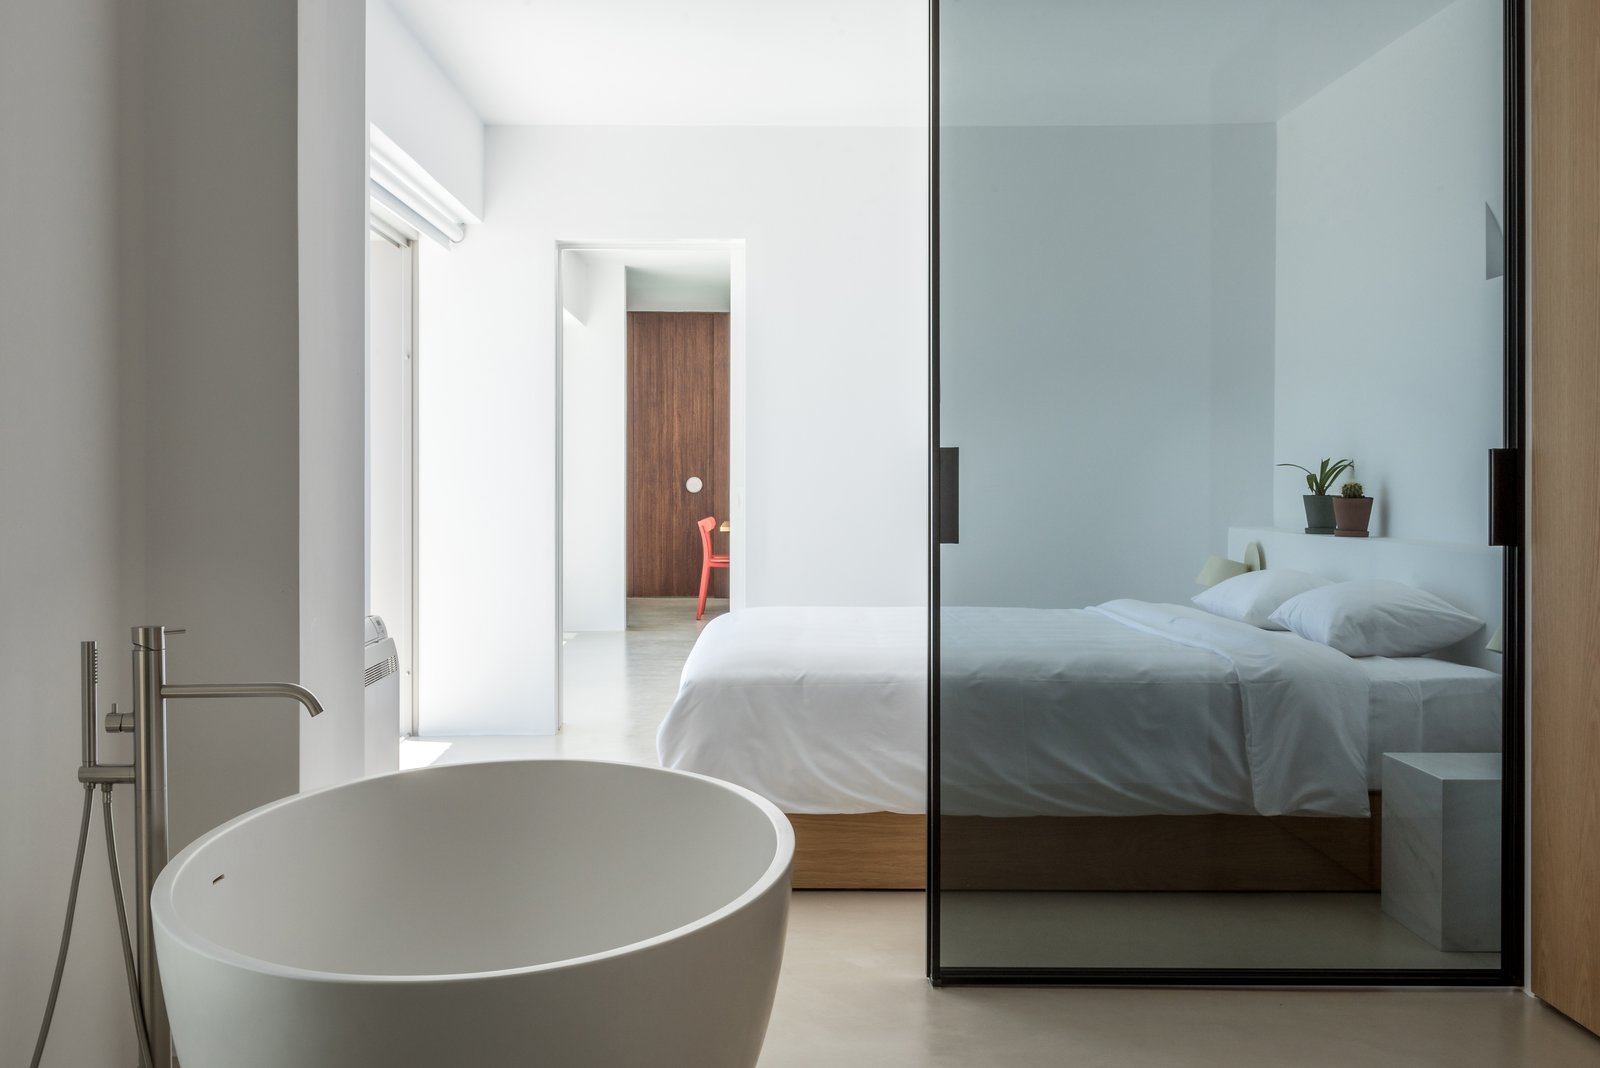 Bedroom, Concrete Floor, Bed, and Accent Lighting Dividers made of brick, wood, and glass separate the different rooms and functional zones.  Photo 14 of 18 in A Modern Home Is Gently Slotted Into a Steep Slope in Santorini